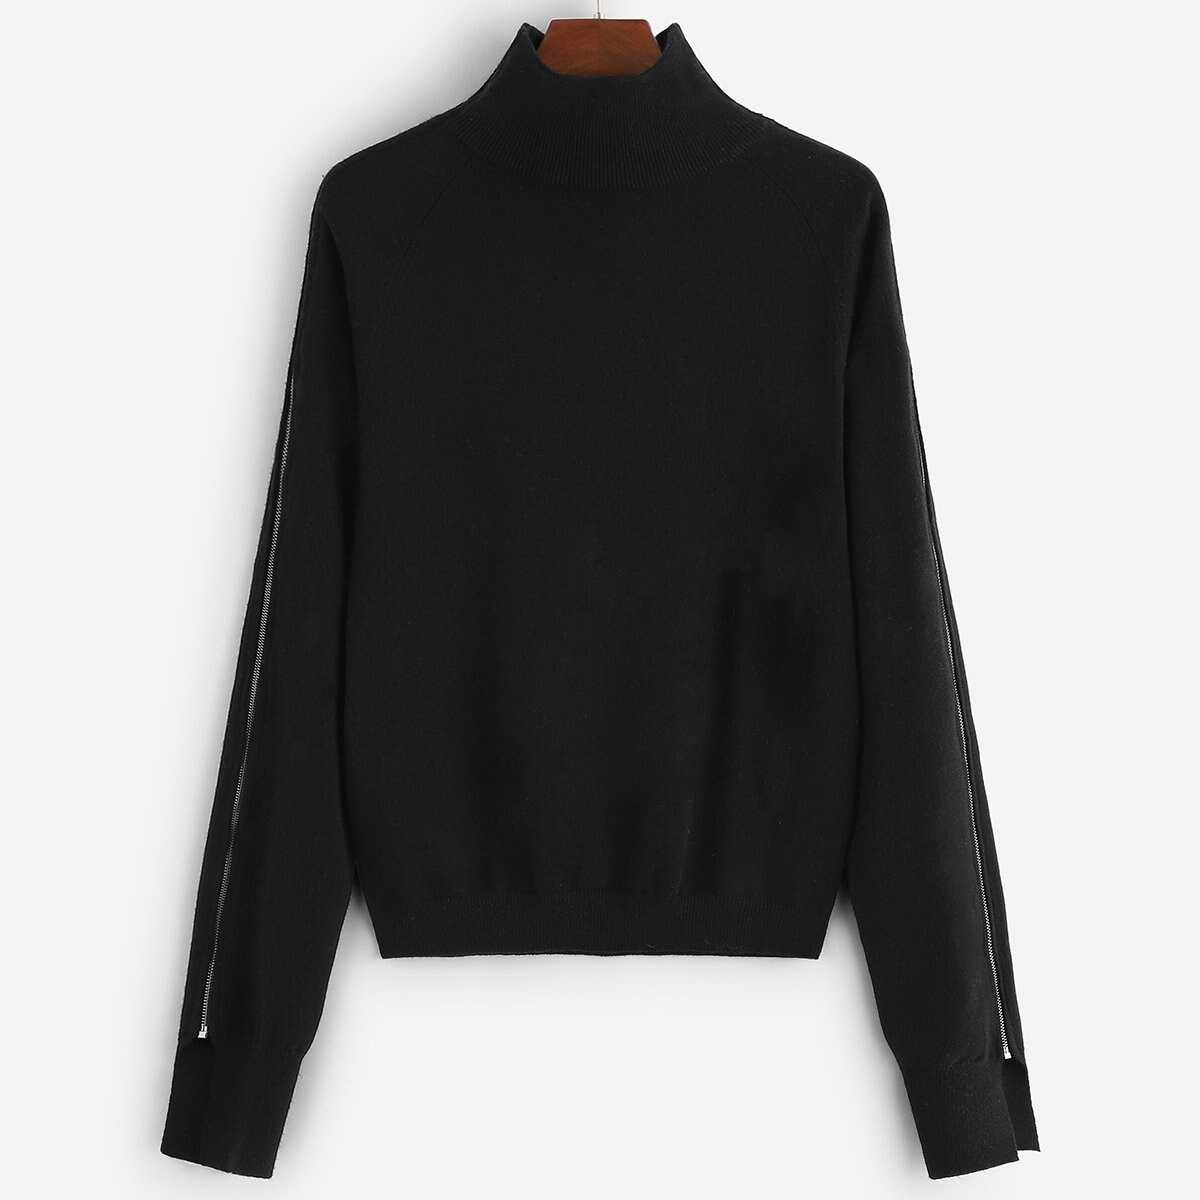 Exposed Zip Detail Soft Knit Pullover - Shein - GOOFASH